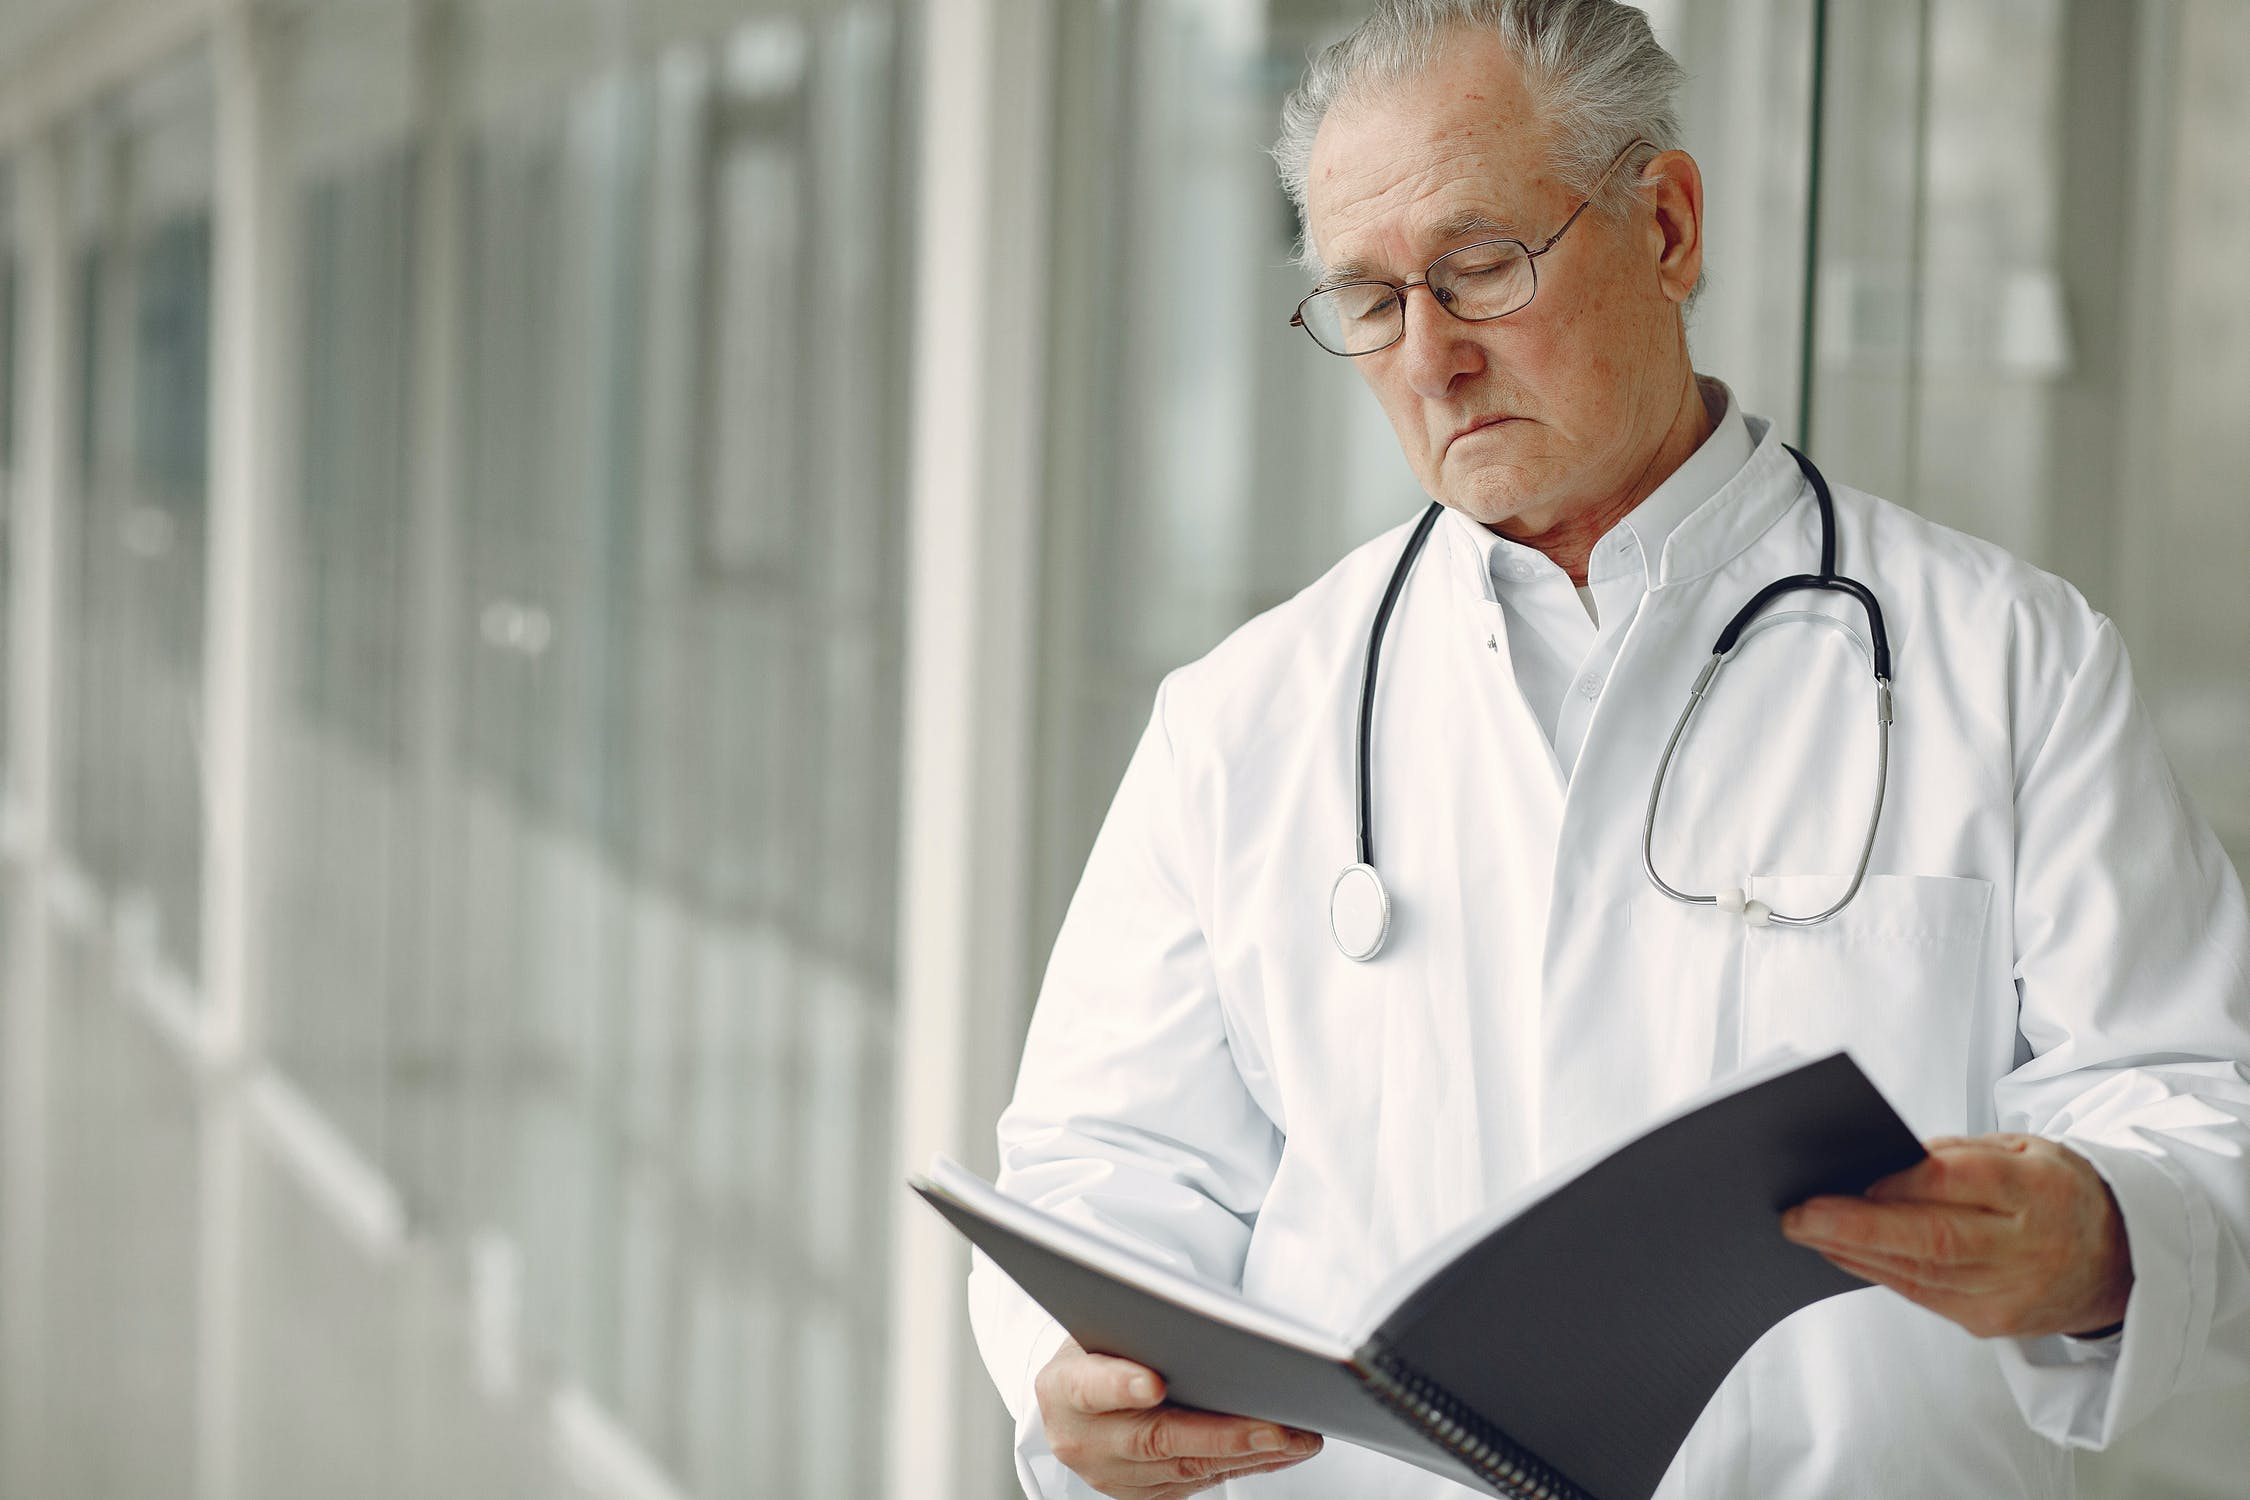 Male medical doctor reviewing a file